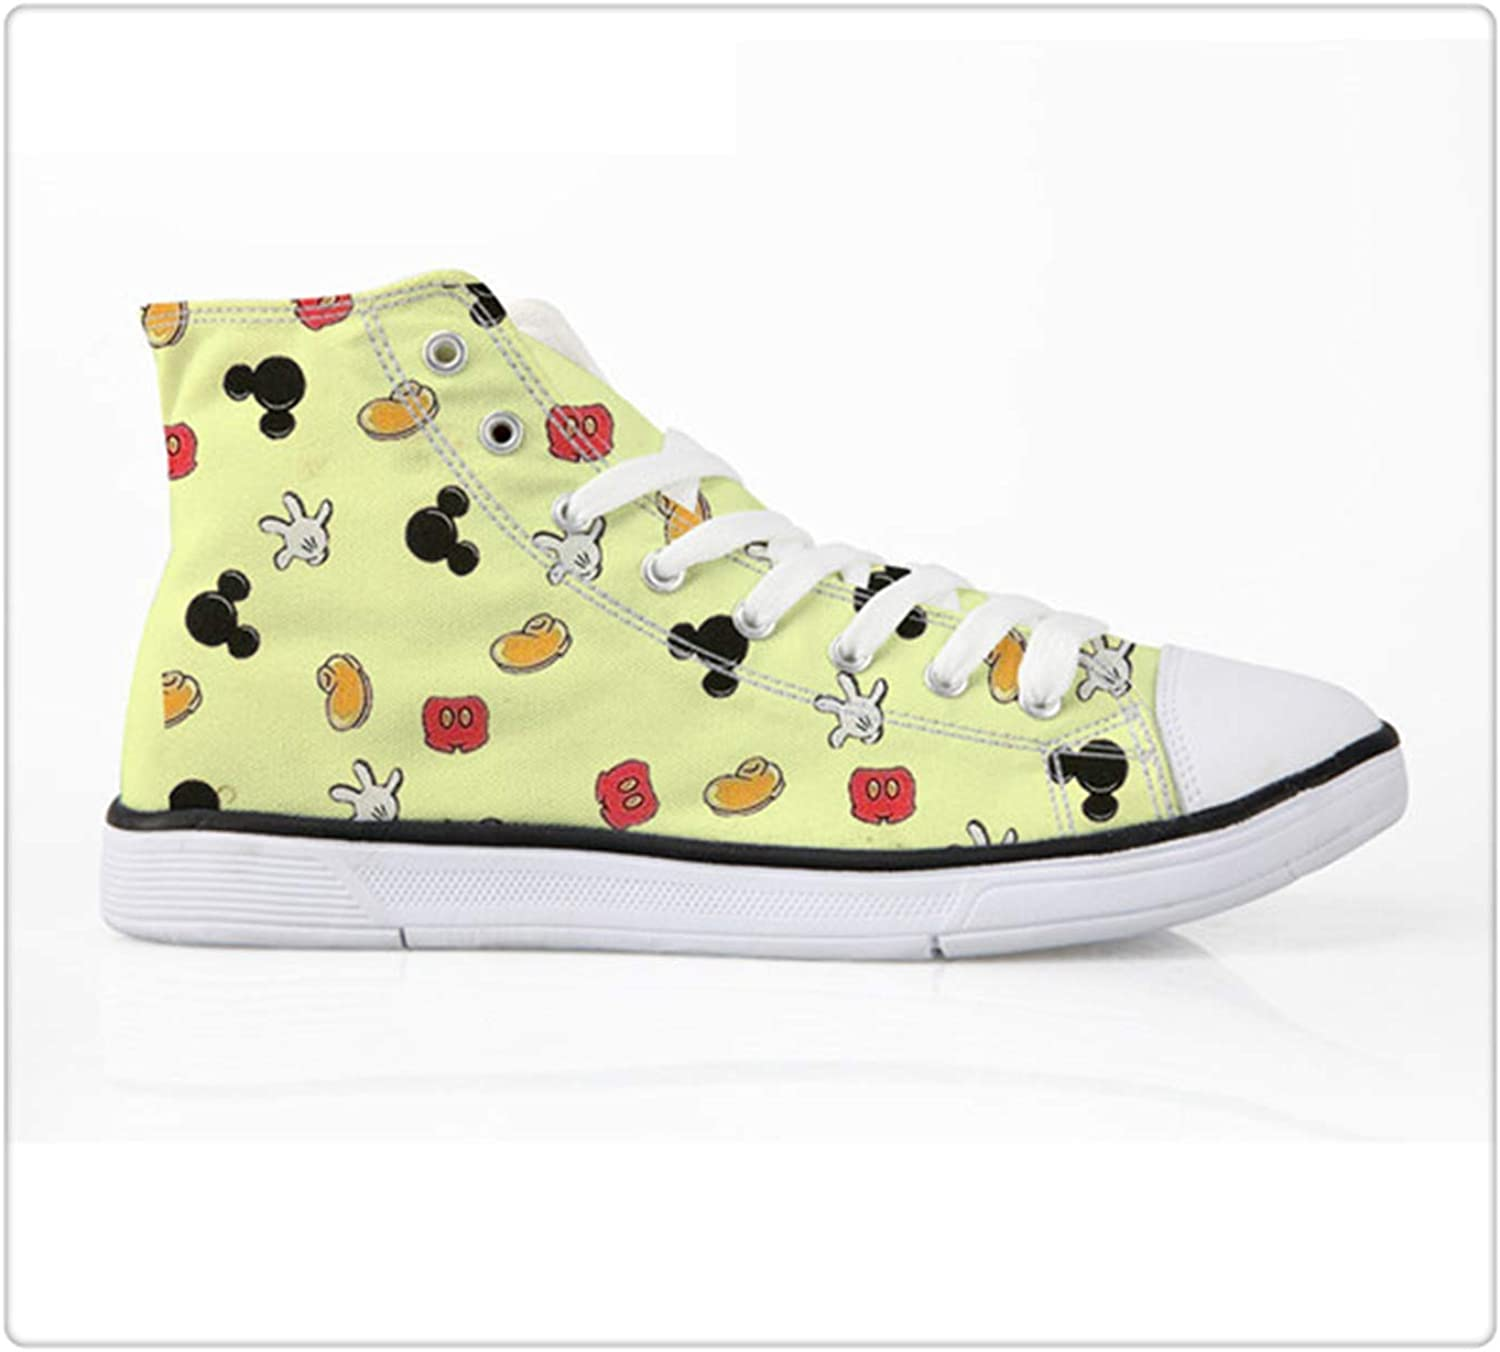 AAKOPE& Cute Cartoon Flat shoes Women Lacing Casual Canvas shoes Youth Girl Brand Design High-top Vulcanize Canvas shoes H5255AK 41